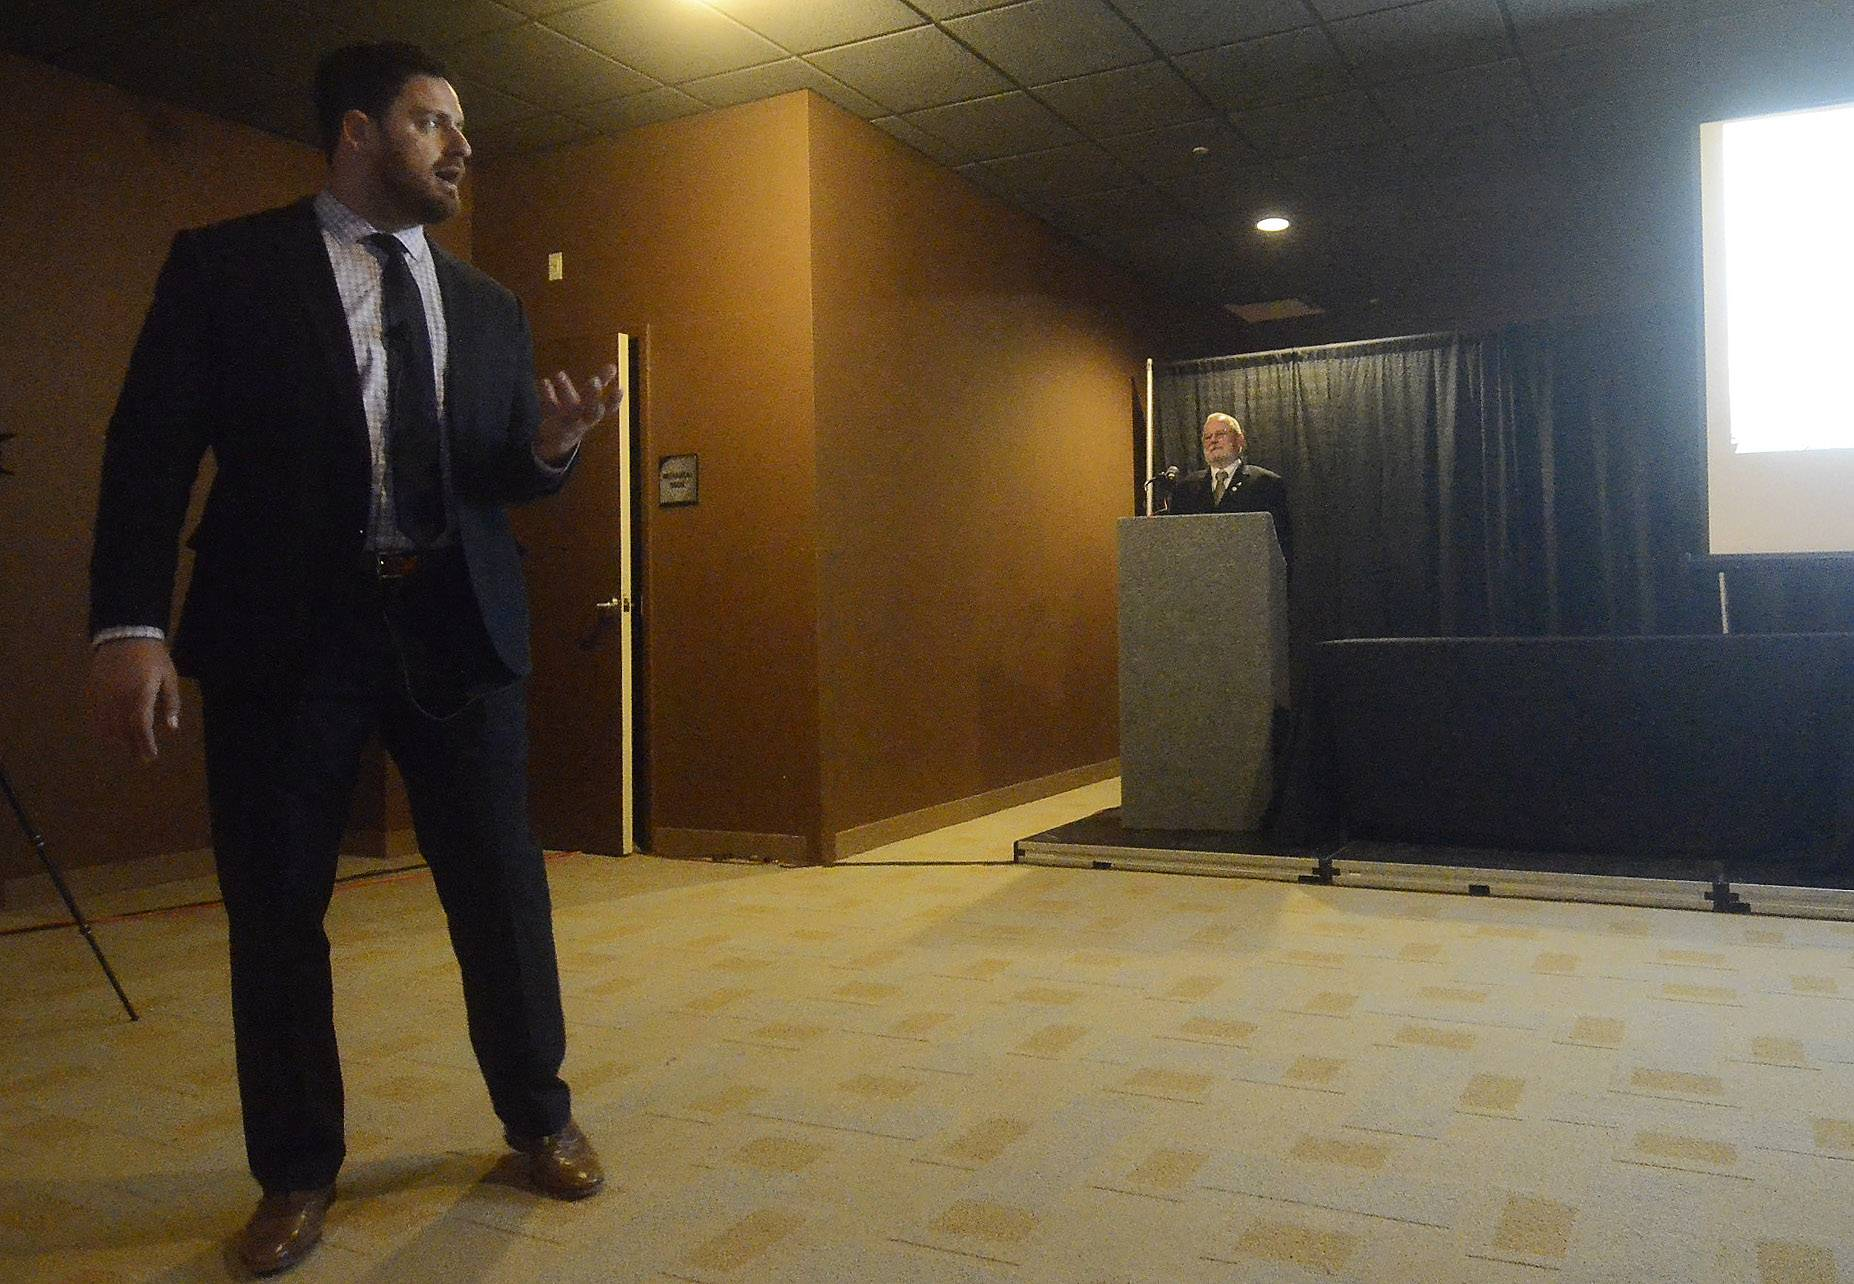 Sears Centre General Manager Ben Gibbs gives an update on the arena Wednesday to members of the Hoffman Estates Chamber of Commerce. Gibbs said arena revenues have exceeded budget projections every year since 2010.